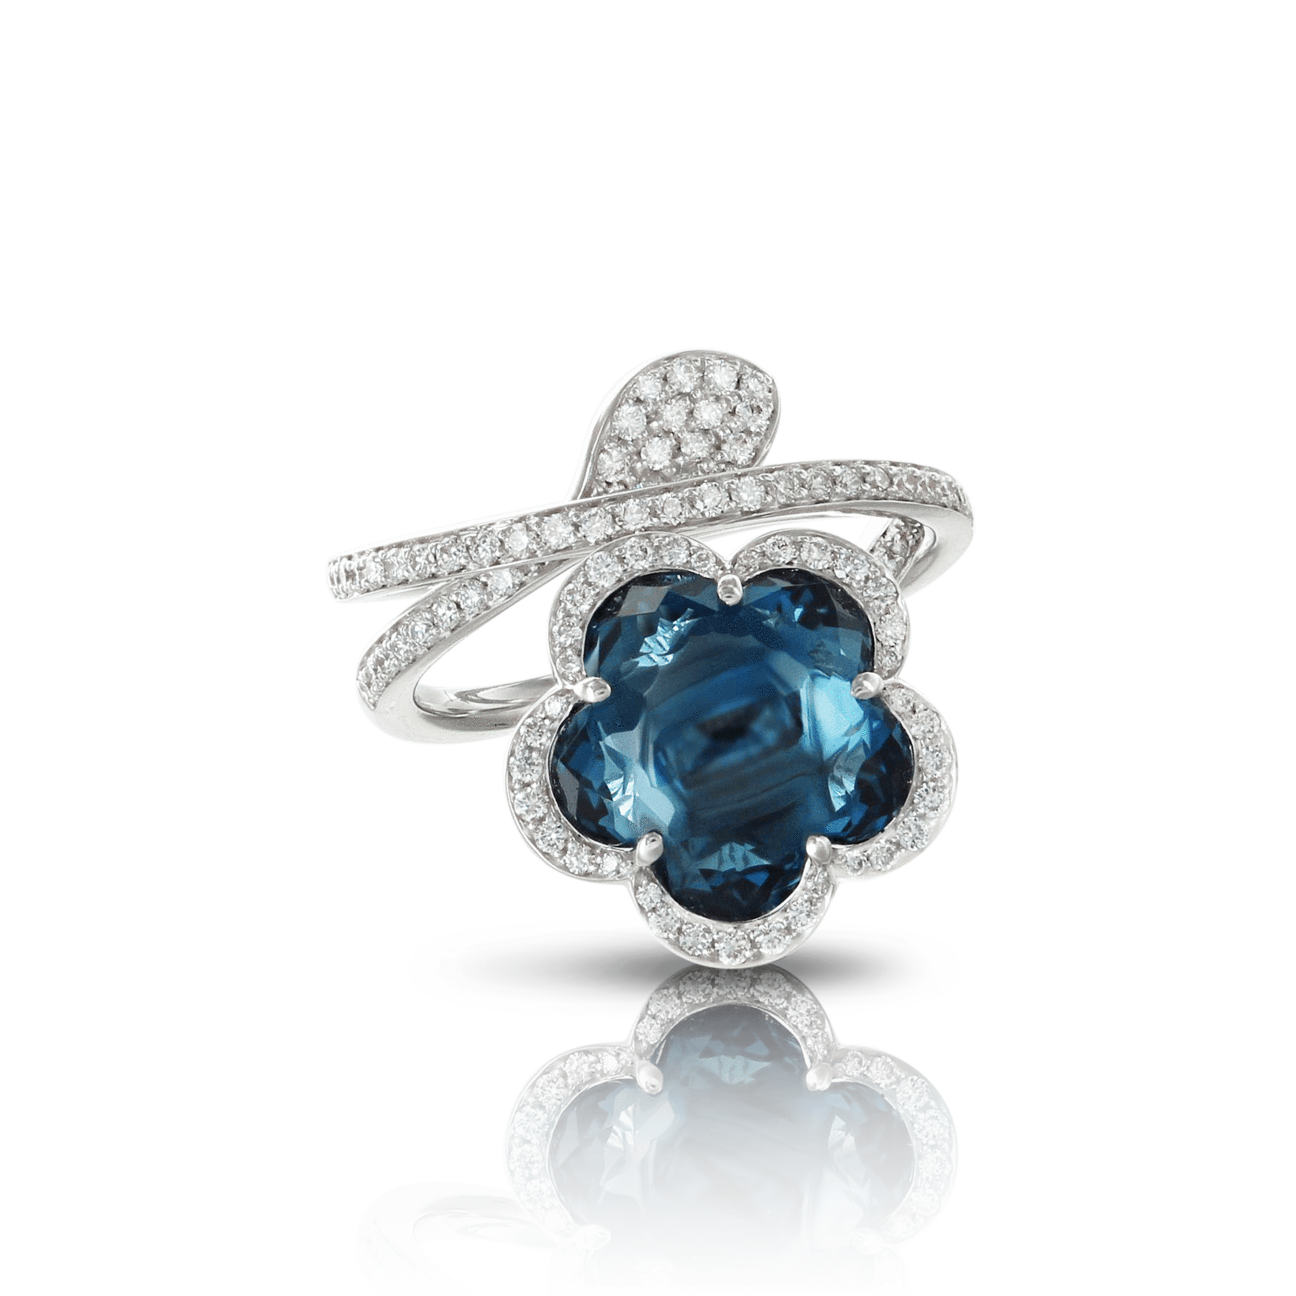 18k White Gold Je T'aime Ring with London Blue Topaz and Diamonds